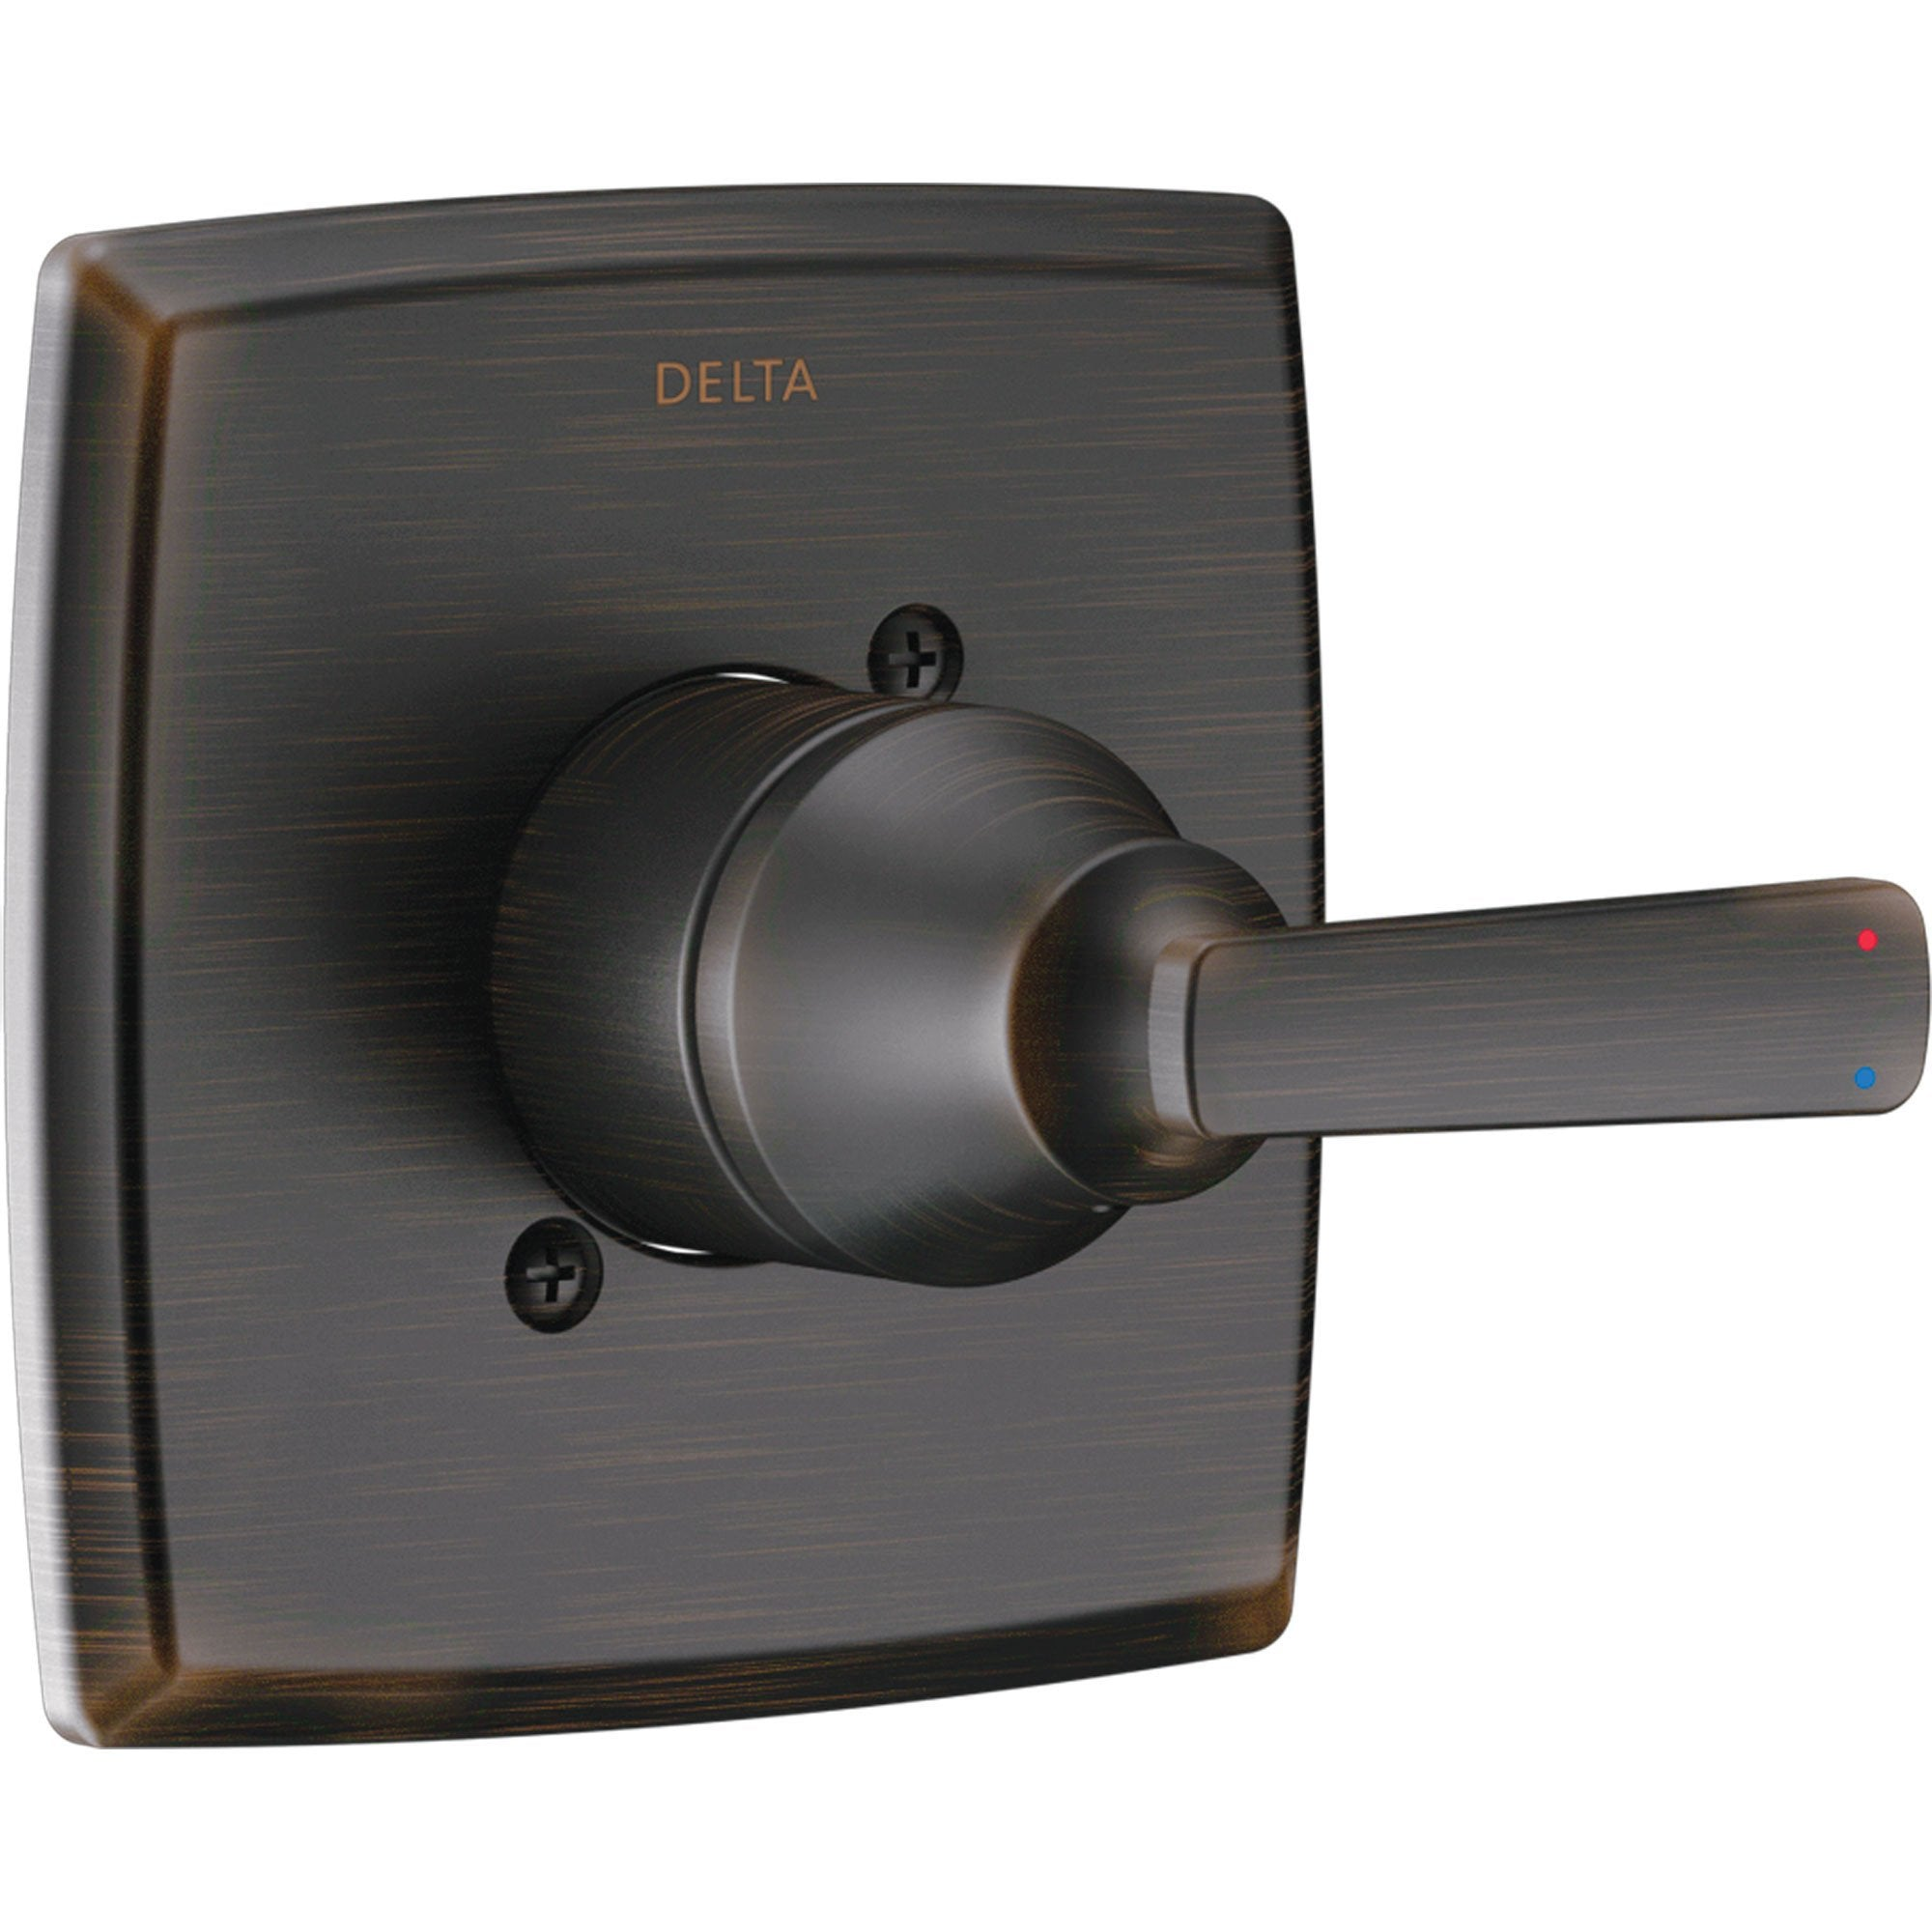 Delta Ashlyn 14 Series Modern Venetian Bronze Finish Single Handle Pressure Balanced Shower Faucet Control INCLUDES Rough-in Valve with Stops D1259V